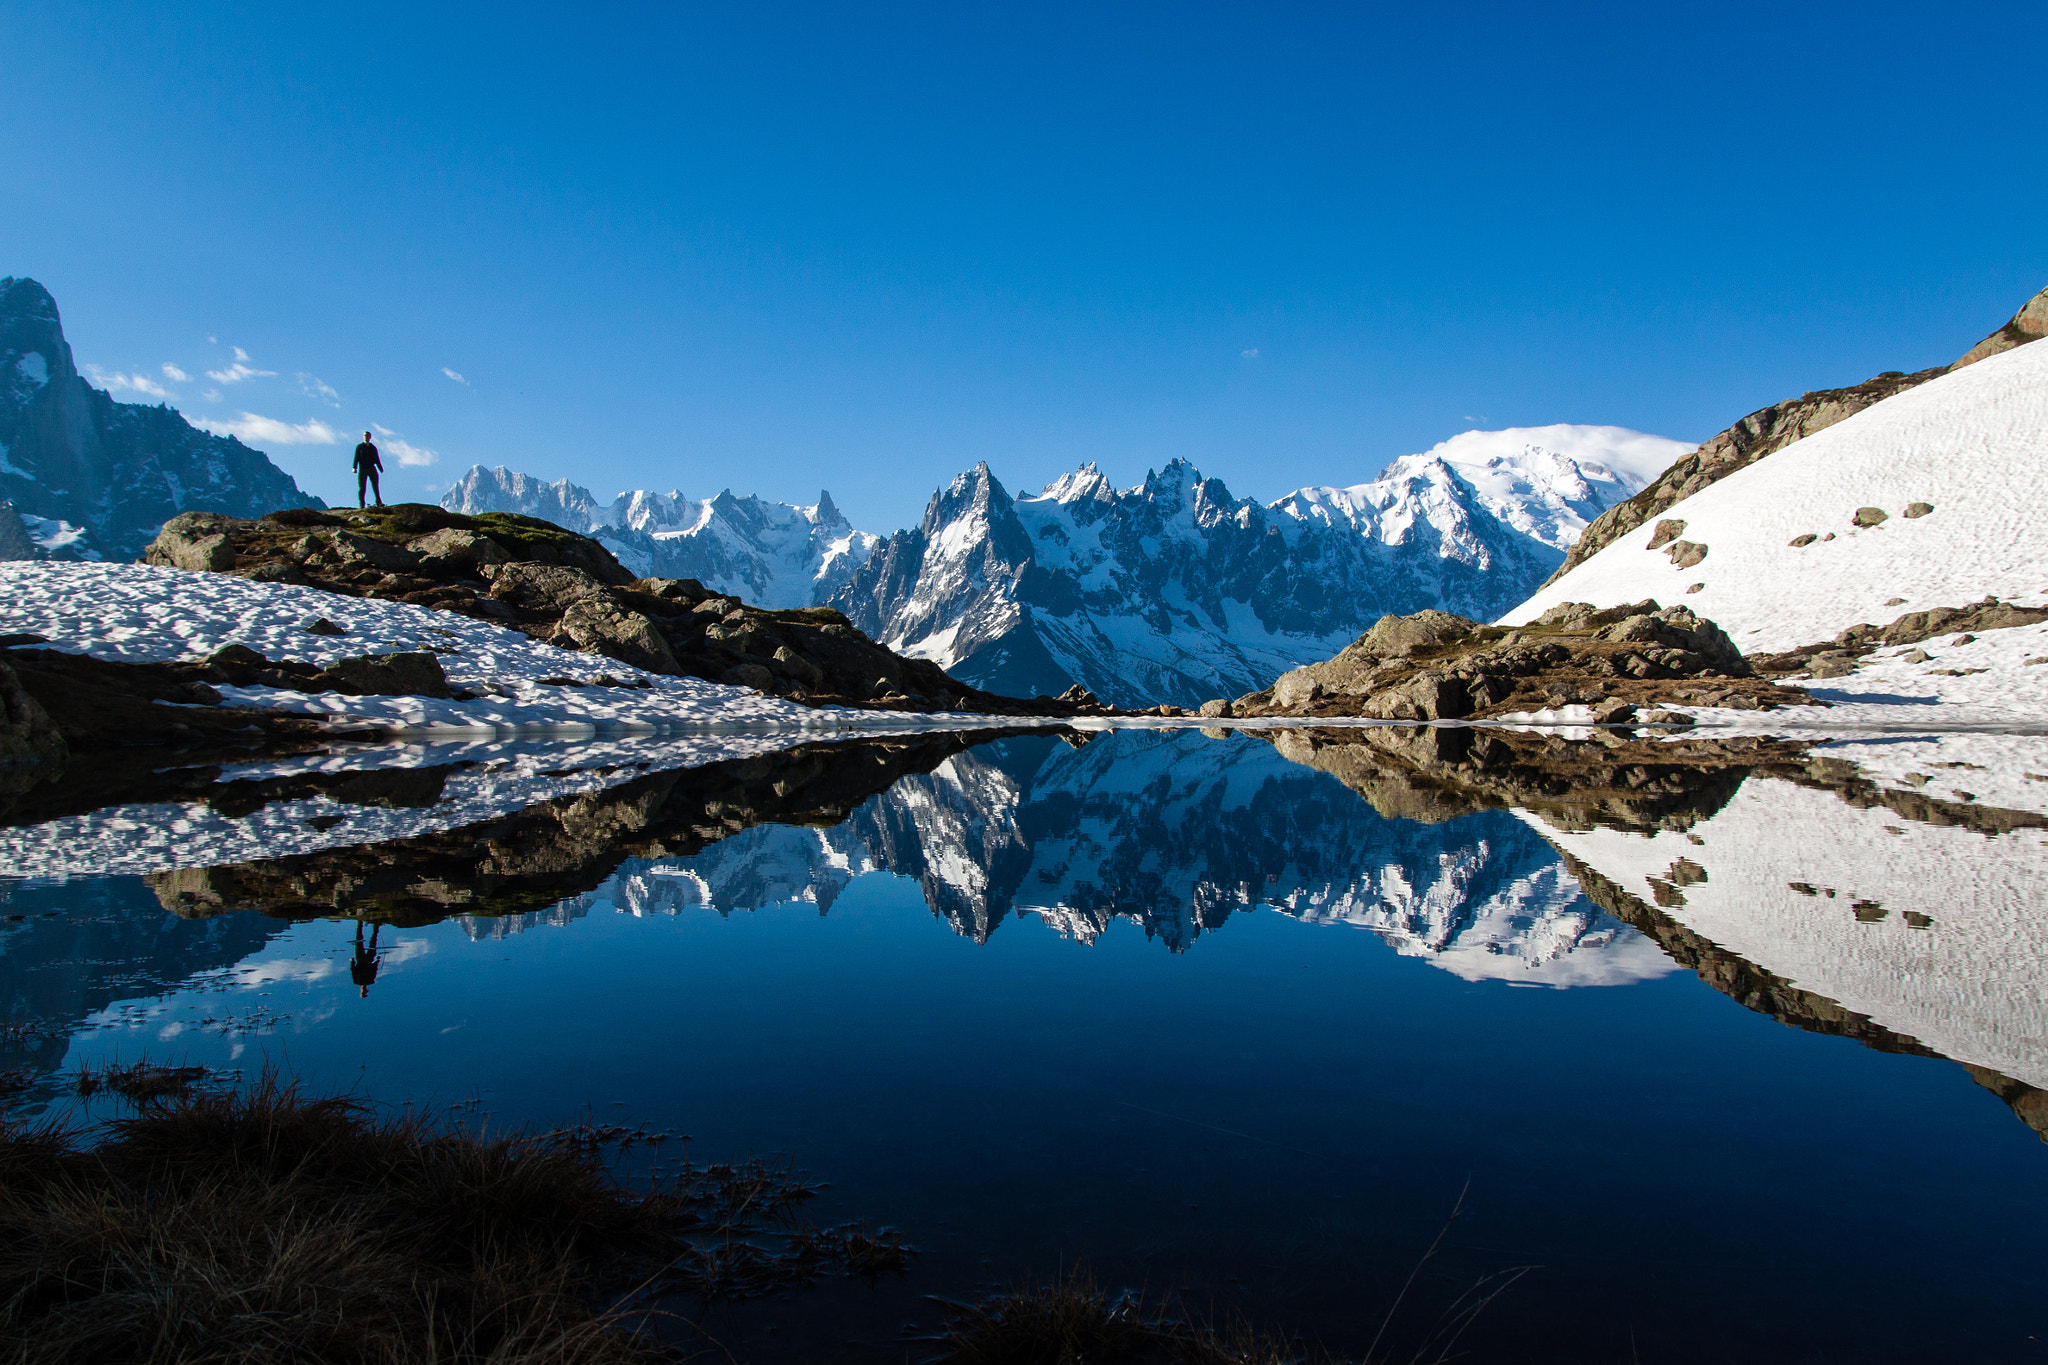 Photograph Reflections in the Aiguilles Rouges by Robbie Shade on 500px